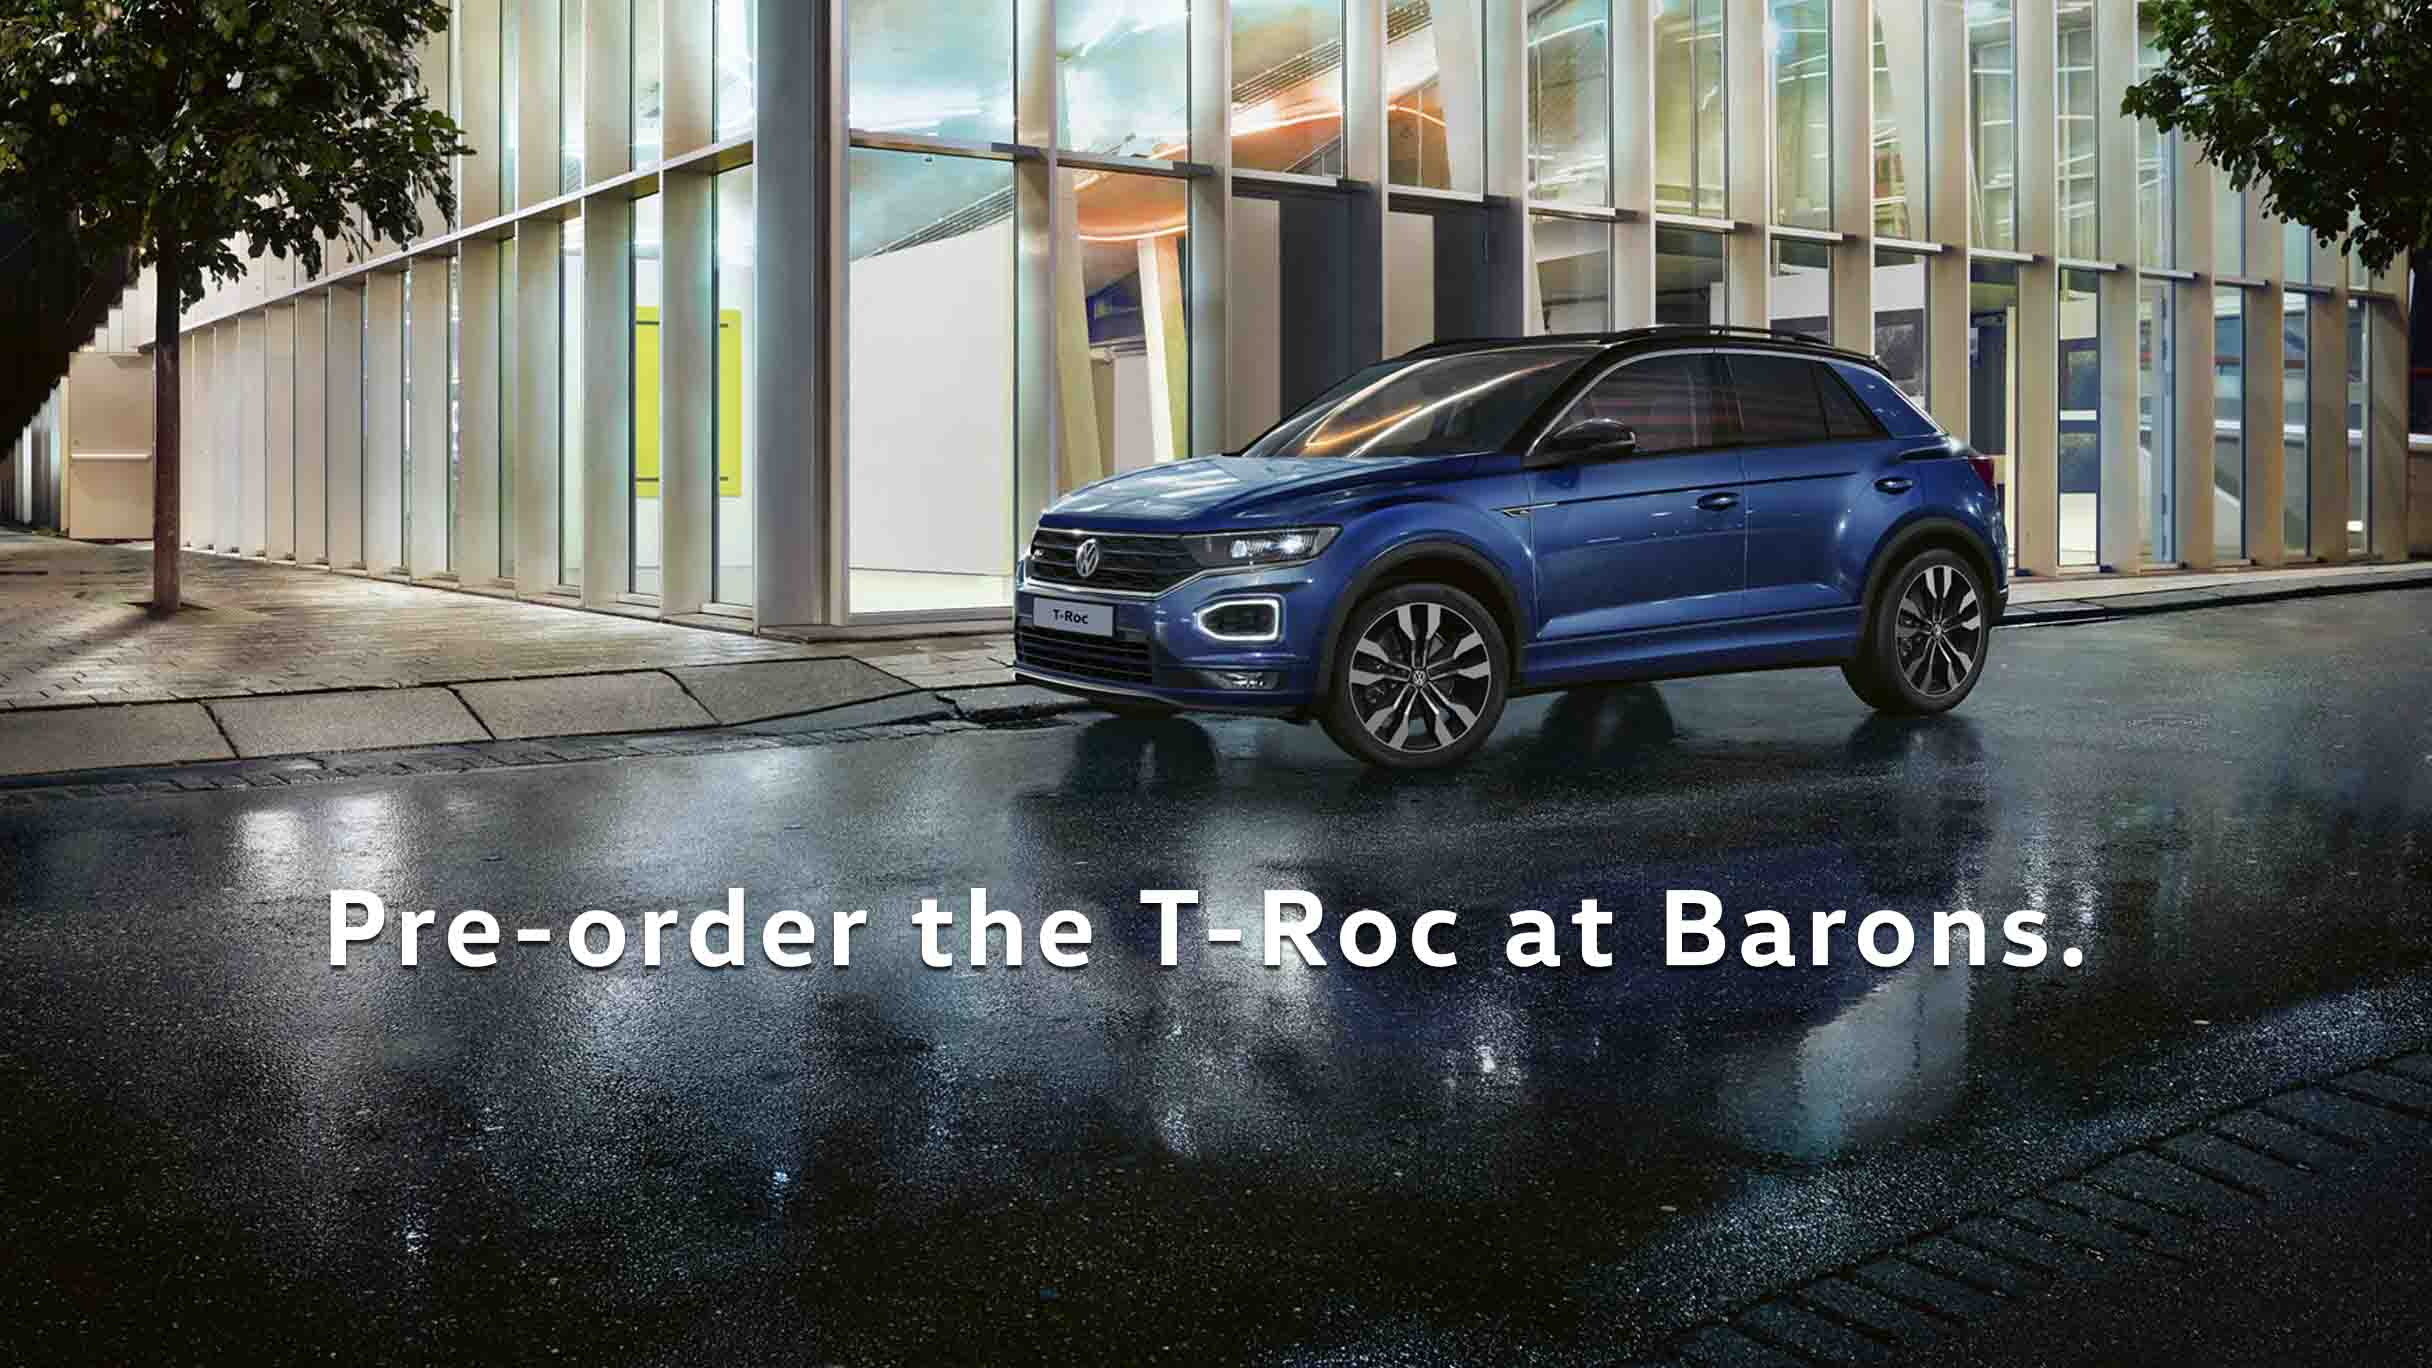 Pre-order the T-Roc at Barons N1 City